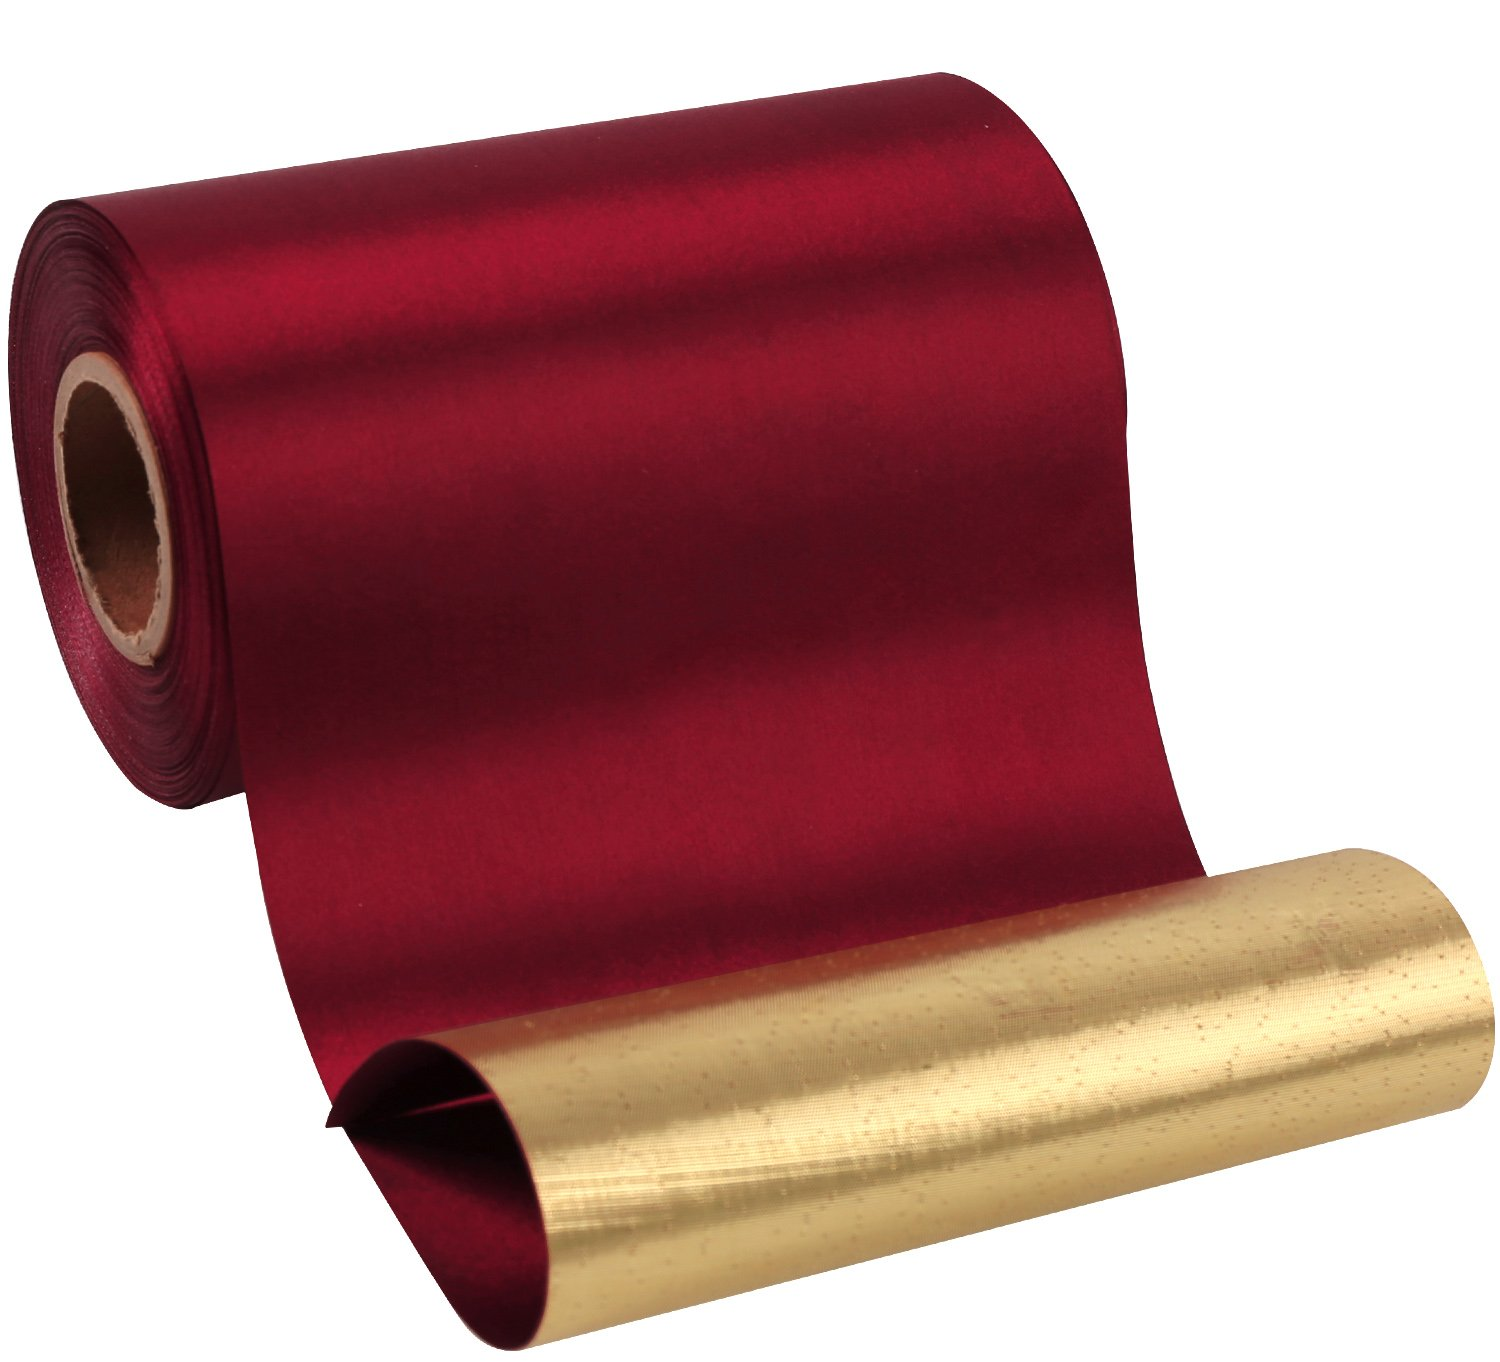 10 Yard//Spool Wedding Party Decoration Craft Ribbon Also for Making Car Bows Red LaRibbons 6 inch Wide Grand Opening Ceremony Satin Ribbon